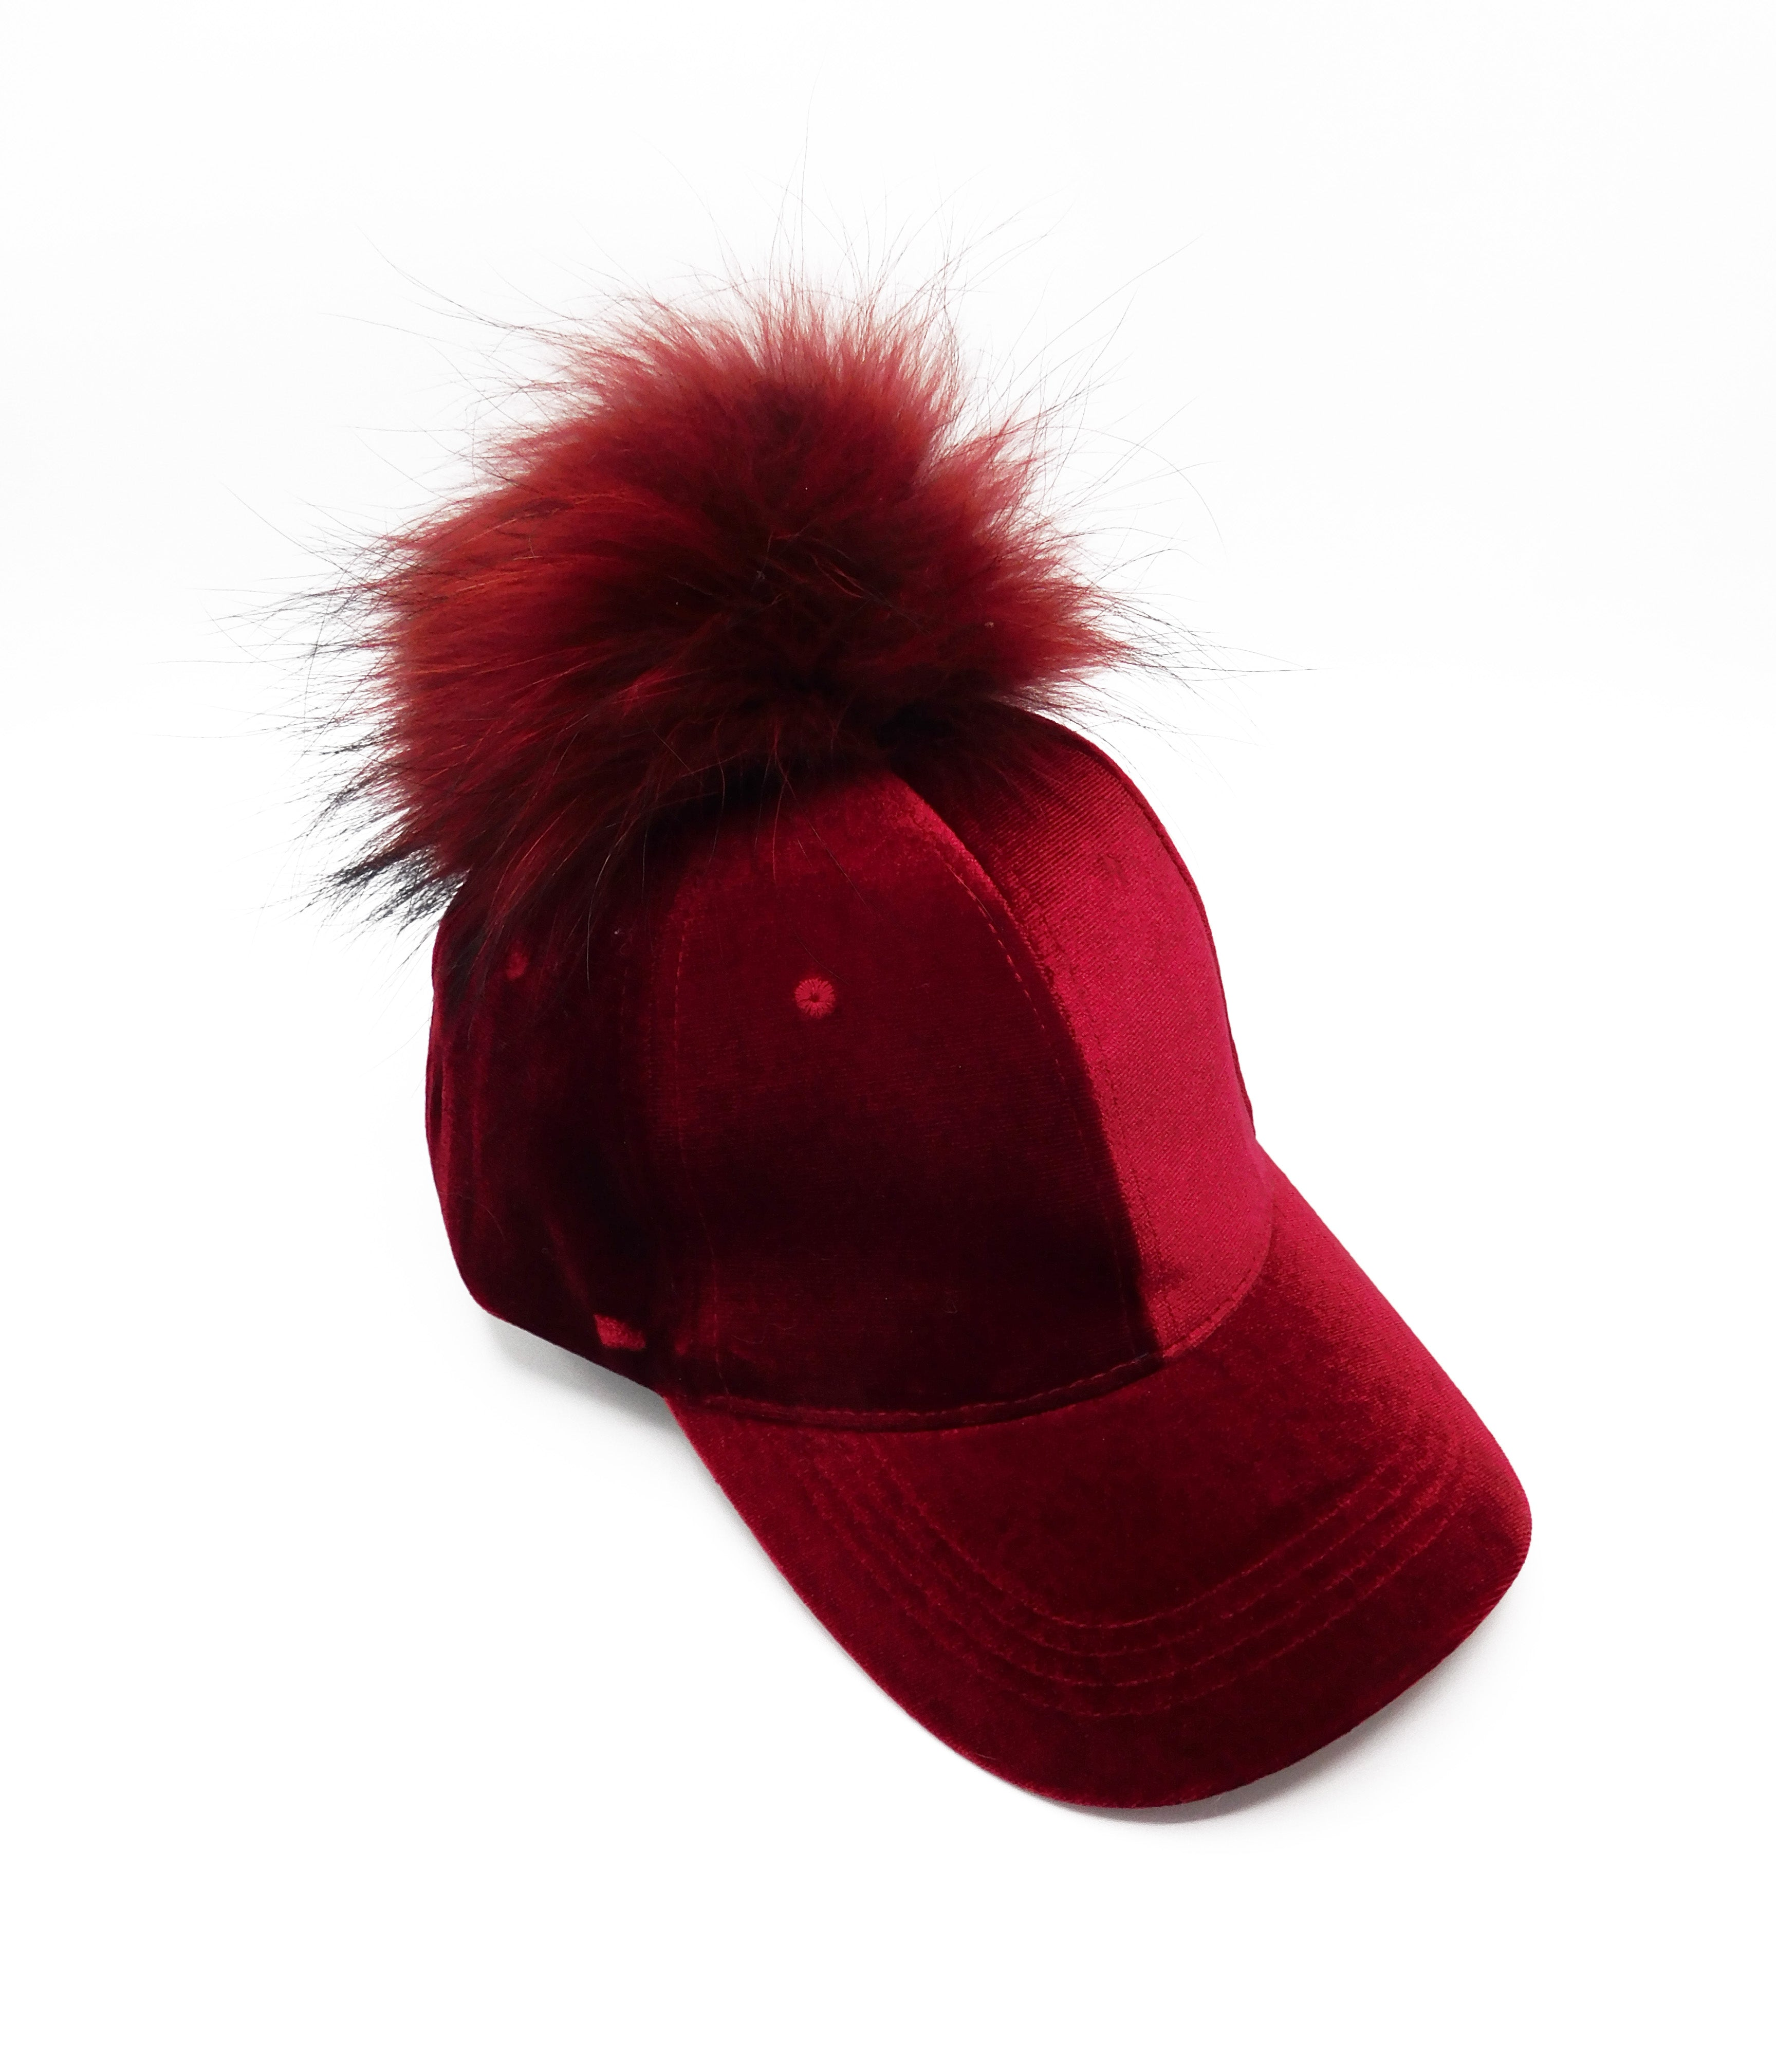 Velvet Caps with Removable Pom Poms - paulamariecollection